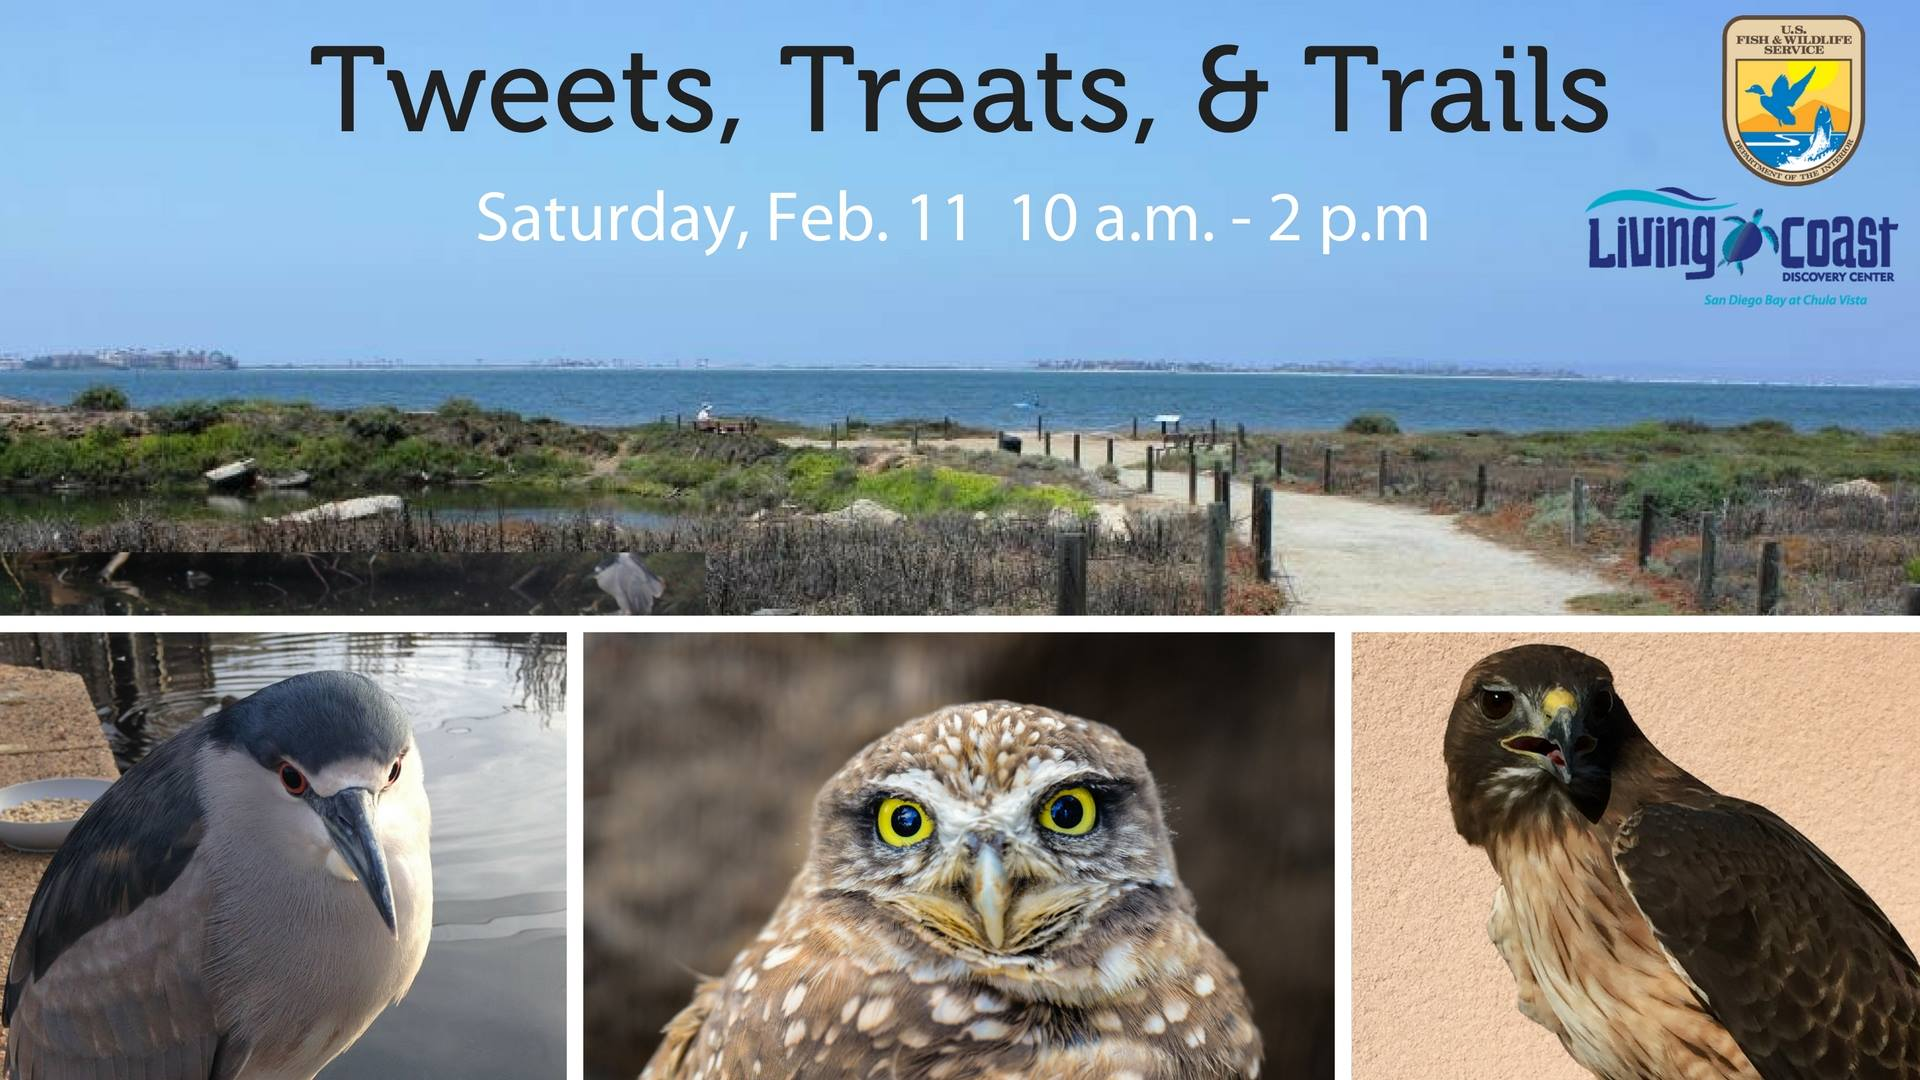 Tweets, Treats, and Trails